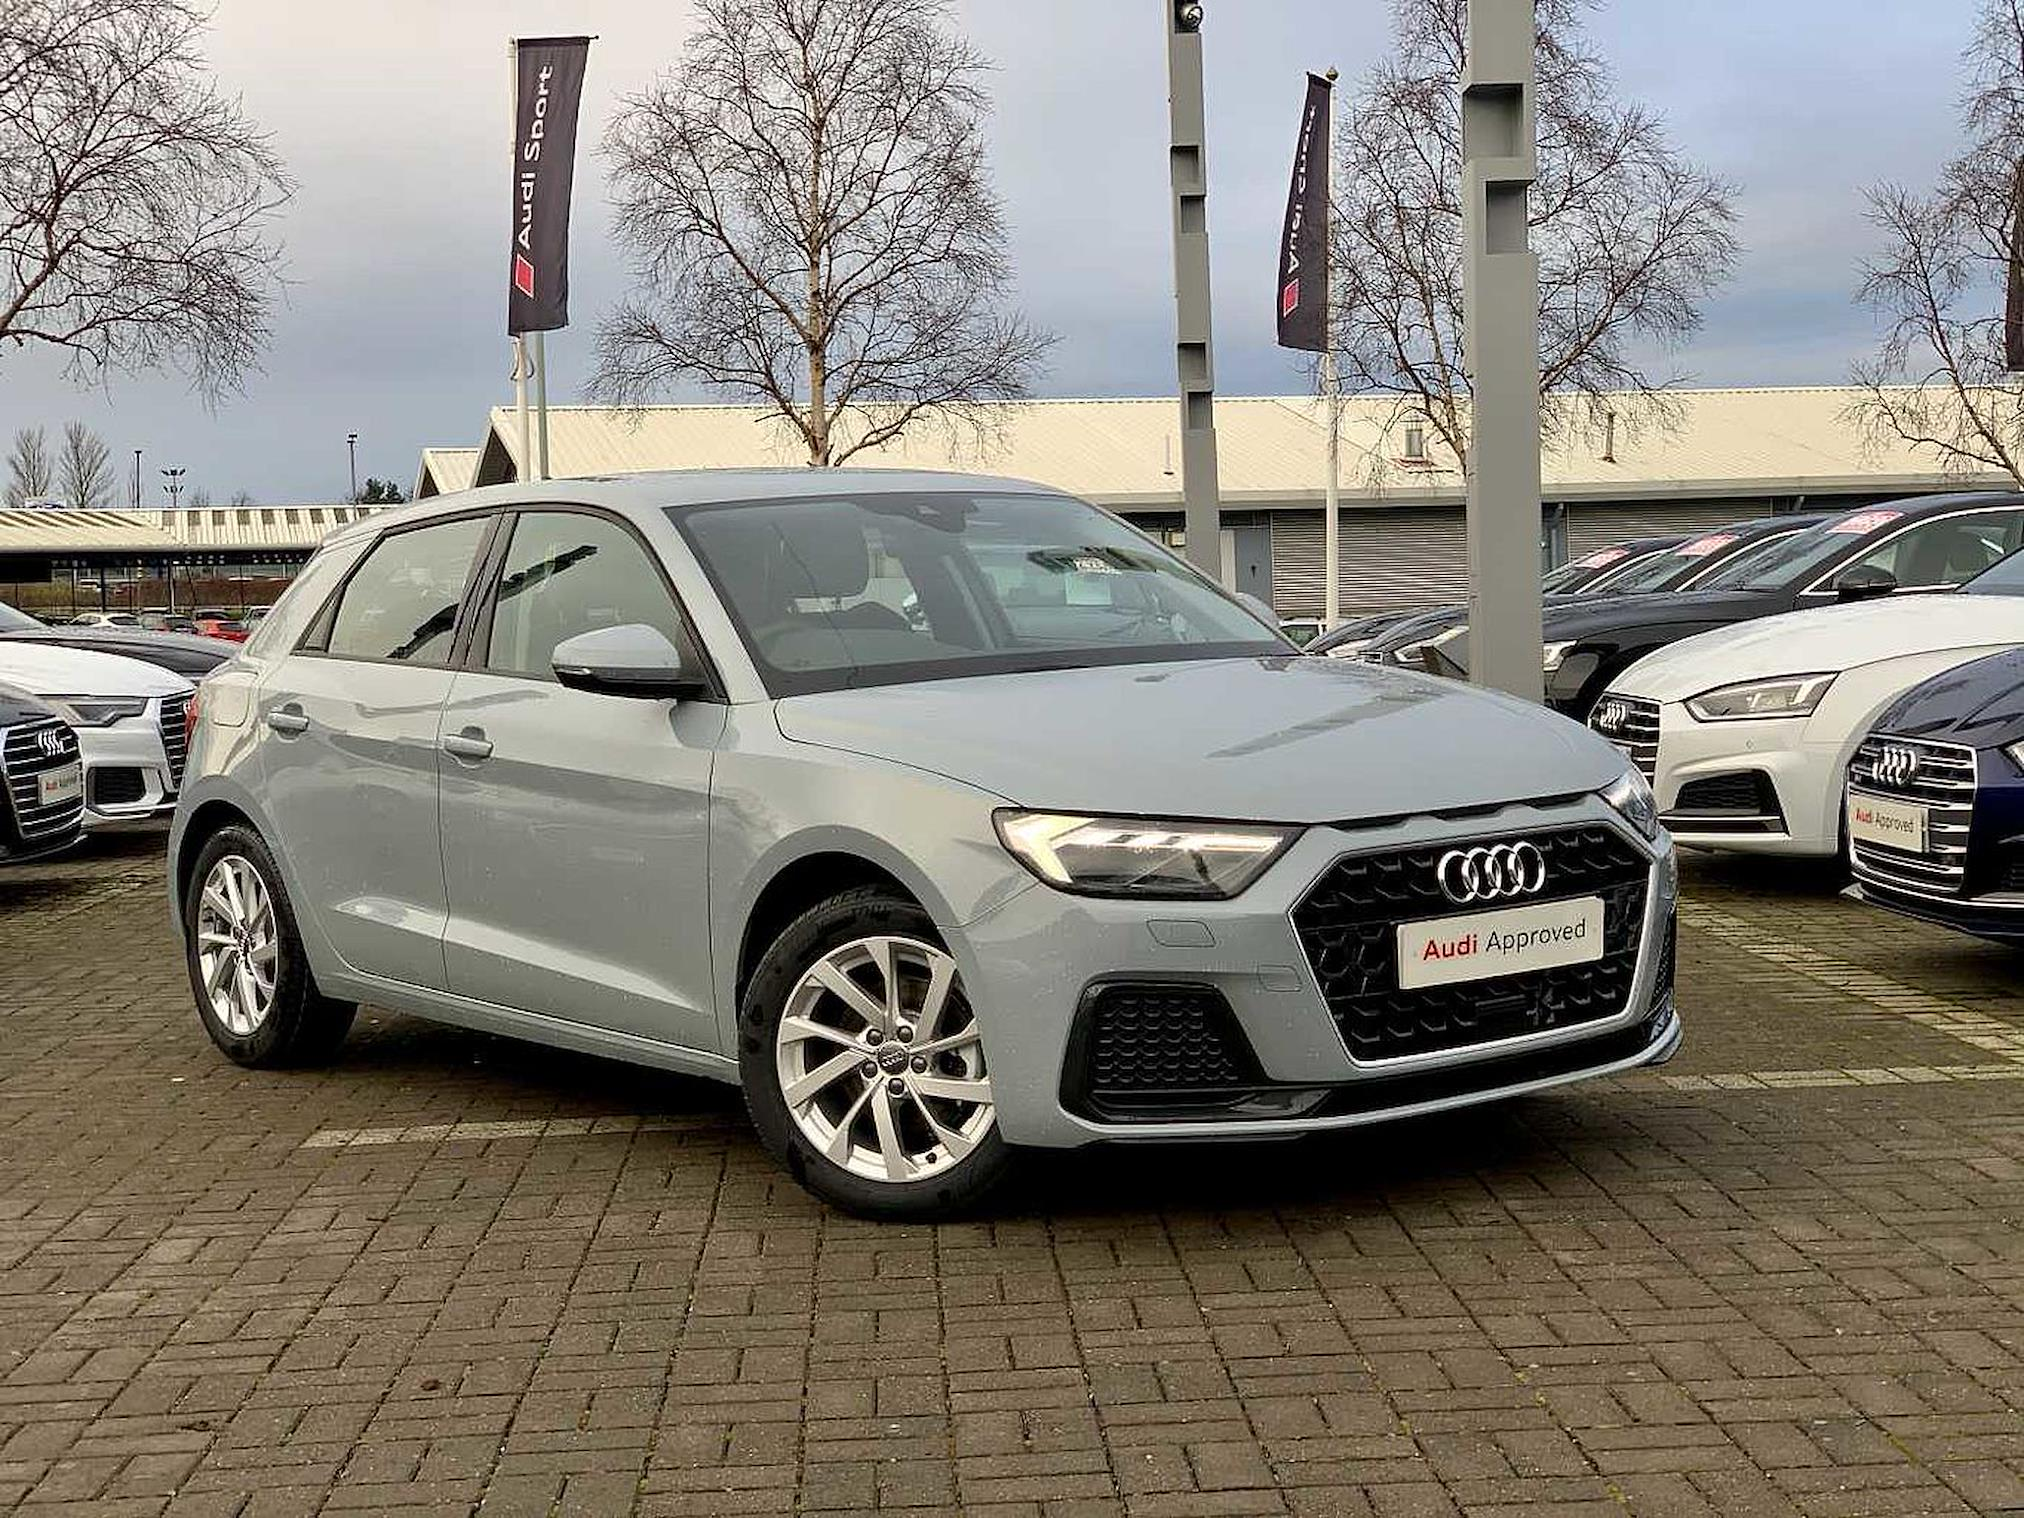 Nearly New A1 Audi 30 Tfsi Sport 5dr 2019 Lookers